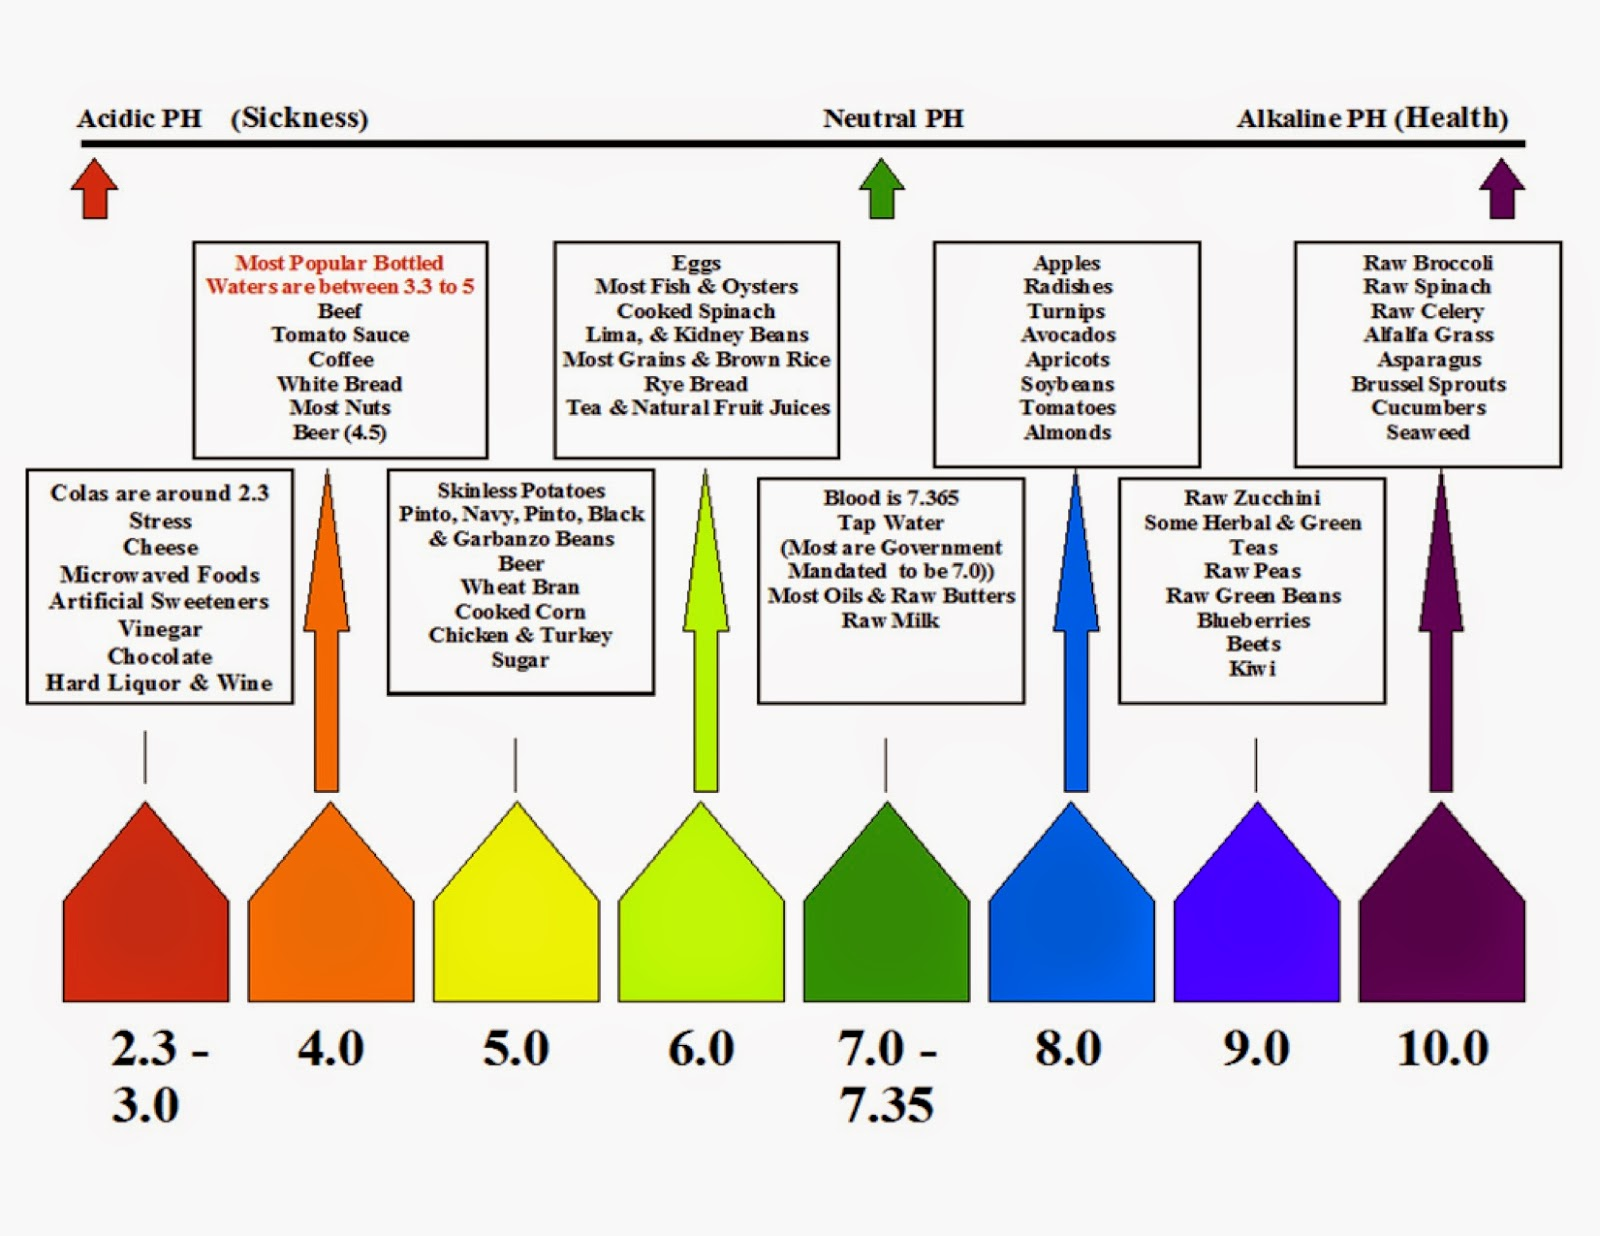 tap water ph neutrality and the acidity of gatorade Tap water is ever so slightly basic hello, i have had two chemistry classes and in each class we tested the ph of tap water and it is slightly acidic, which my prof said was true i tested my.